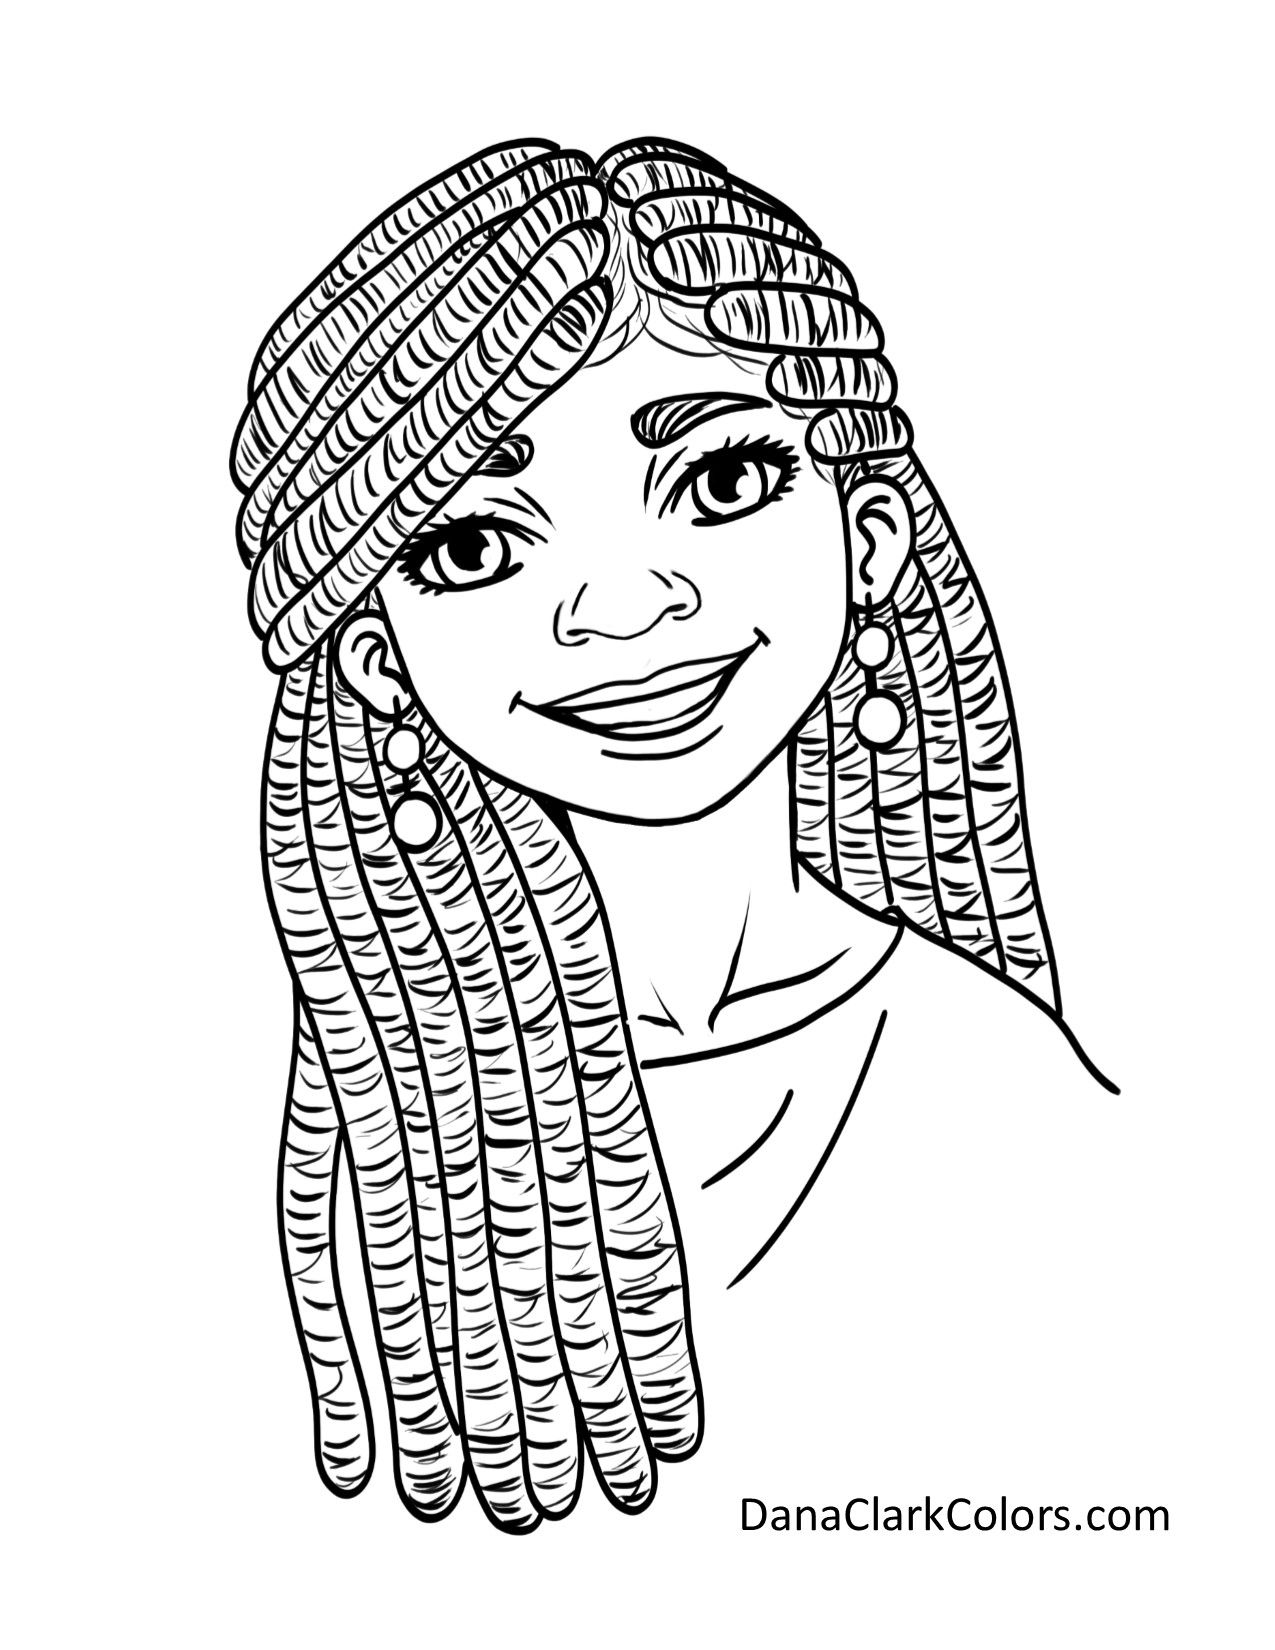 Black Kids Coloring Page #africanamericancoloringpage Girl Magic Color